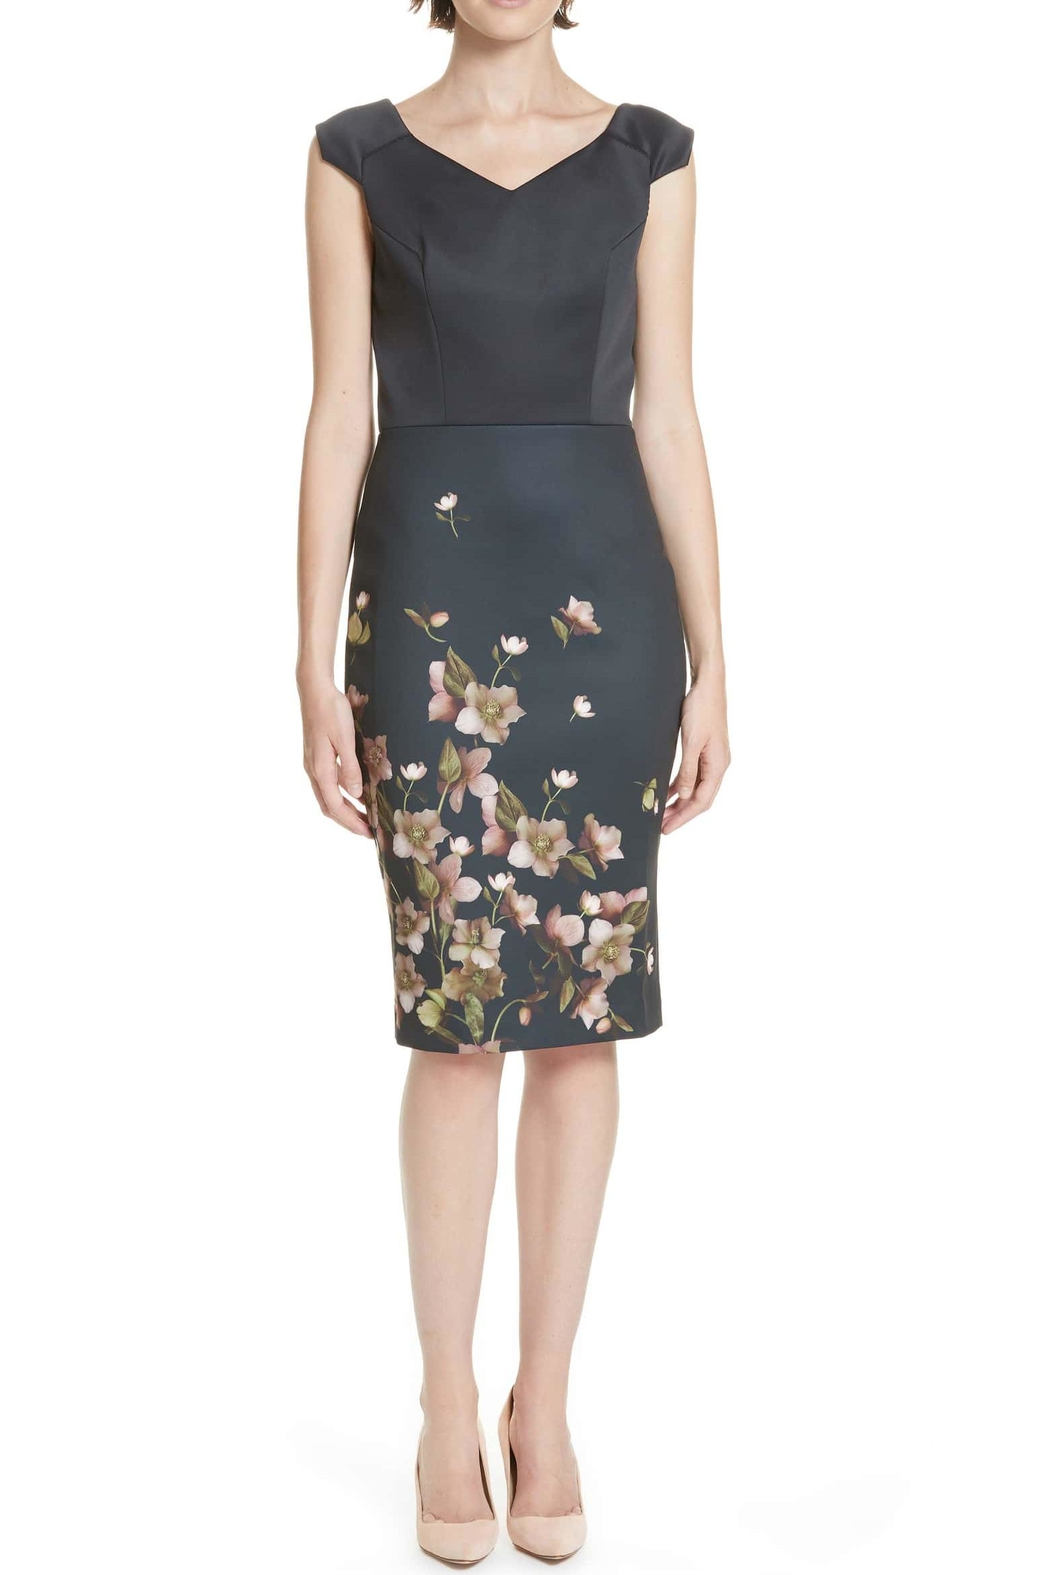 7a3070a5df0 Ted Baker Fitted Floral Dress from Wallingford by The Dressing Room ...